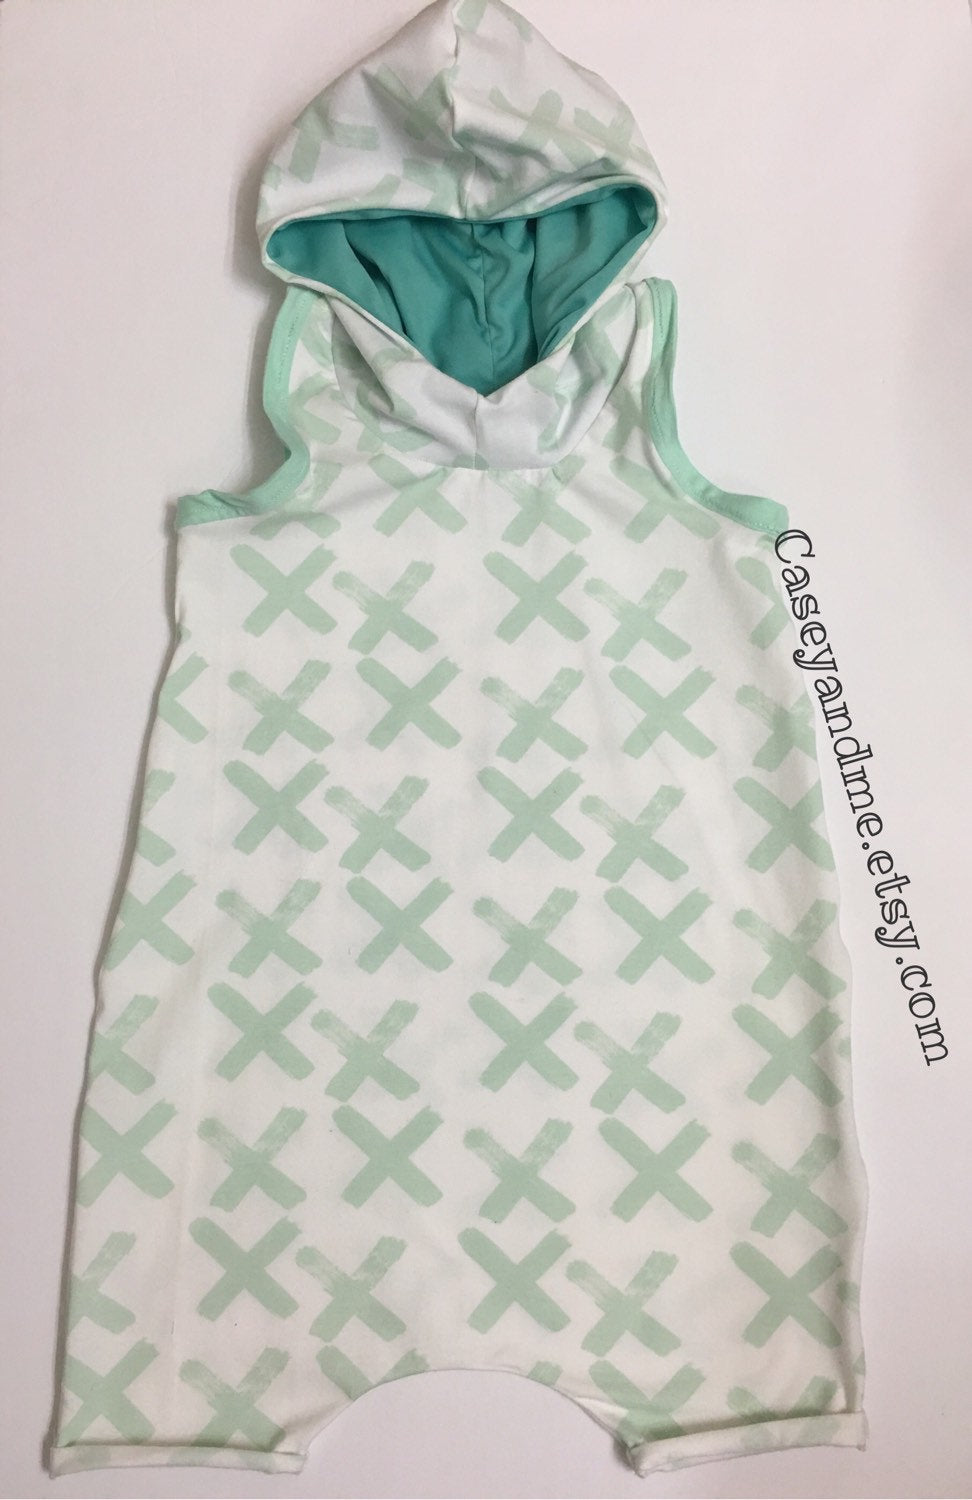 Mint Hoodied romper ,baby romper, toddler romper, stylish romper,toddler outfit